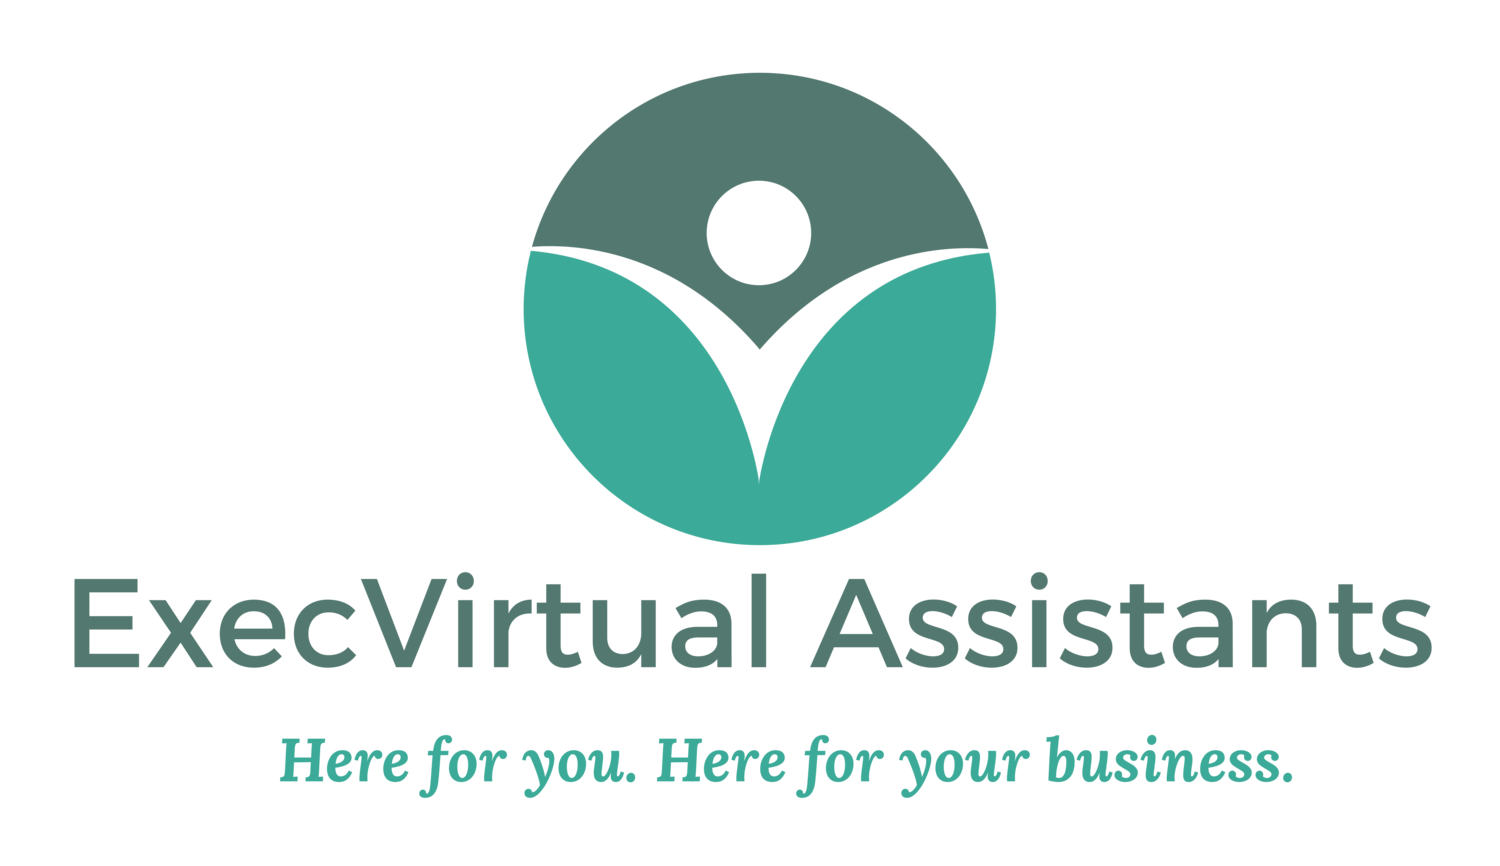 ExecVirtual Assistants | EVA